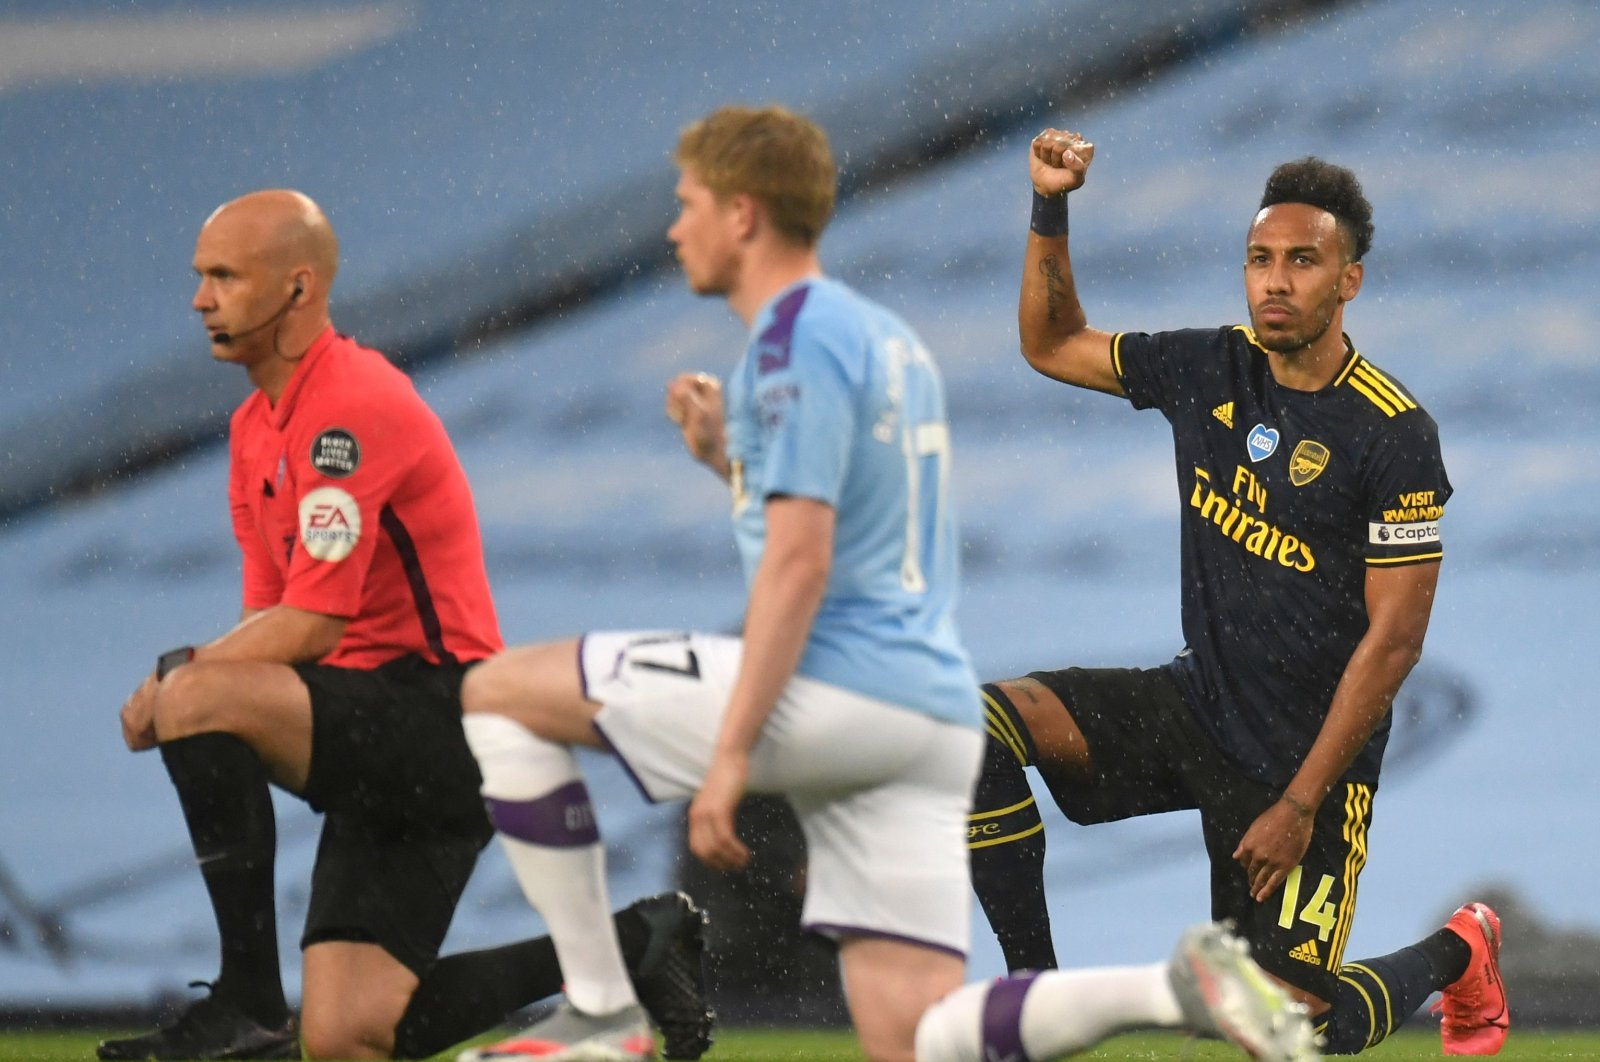 Arsenal's Gabonese striker Pierre-Emerick Aubameyang (R) takes a knee alongside Manchester City's Belgian midfielder Kevin De Bruyne (C) and Referee Anthony Taylor (L) ahead of the English Premier League football match between Manchester City and Arsenal at the Etihad Stadium in Manchester, northwest England, June 17, 2020. (AFP Photo)